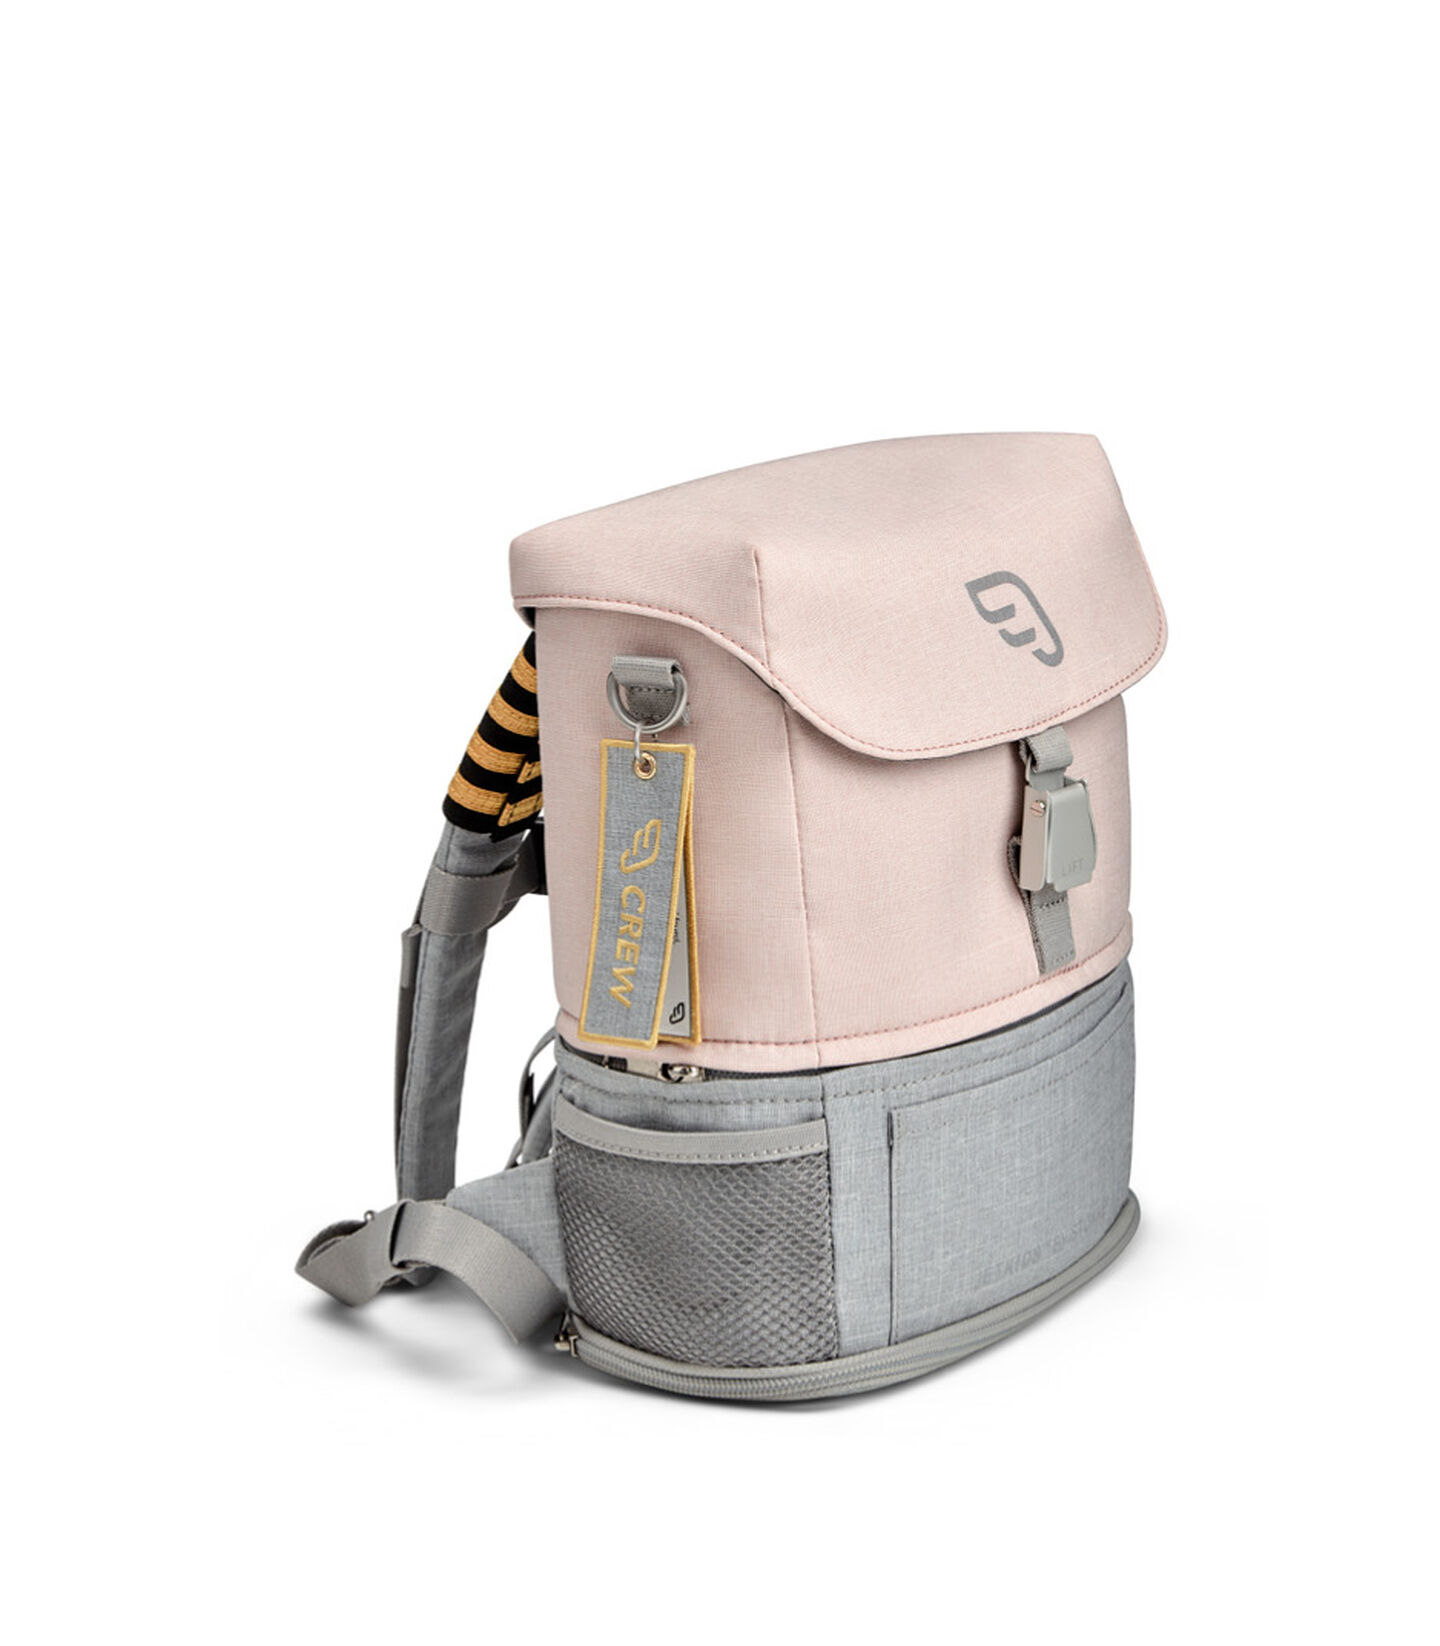 JETKIDS Crew Backpack Pink Lemonade, Pink Lemonade, mainview view 2